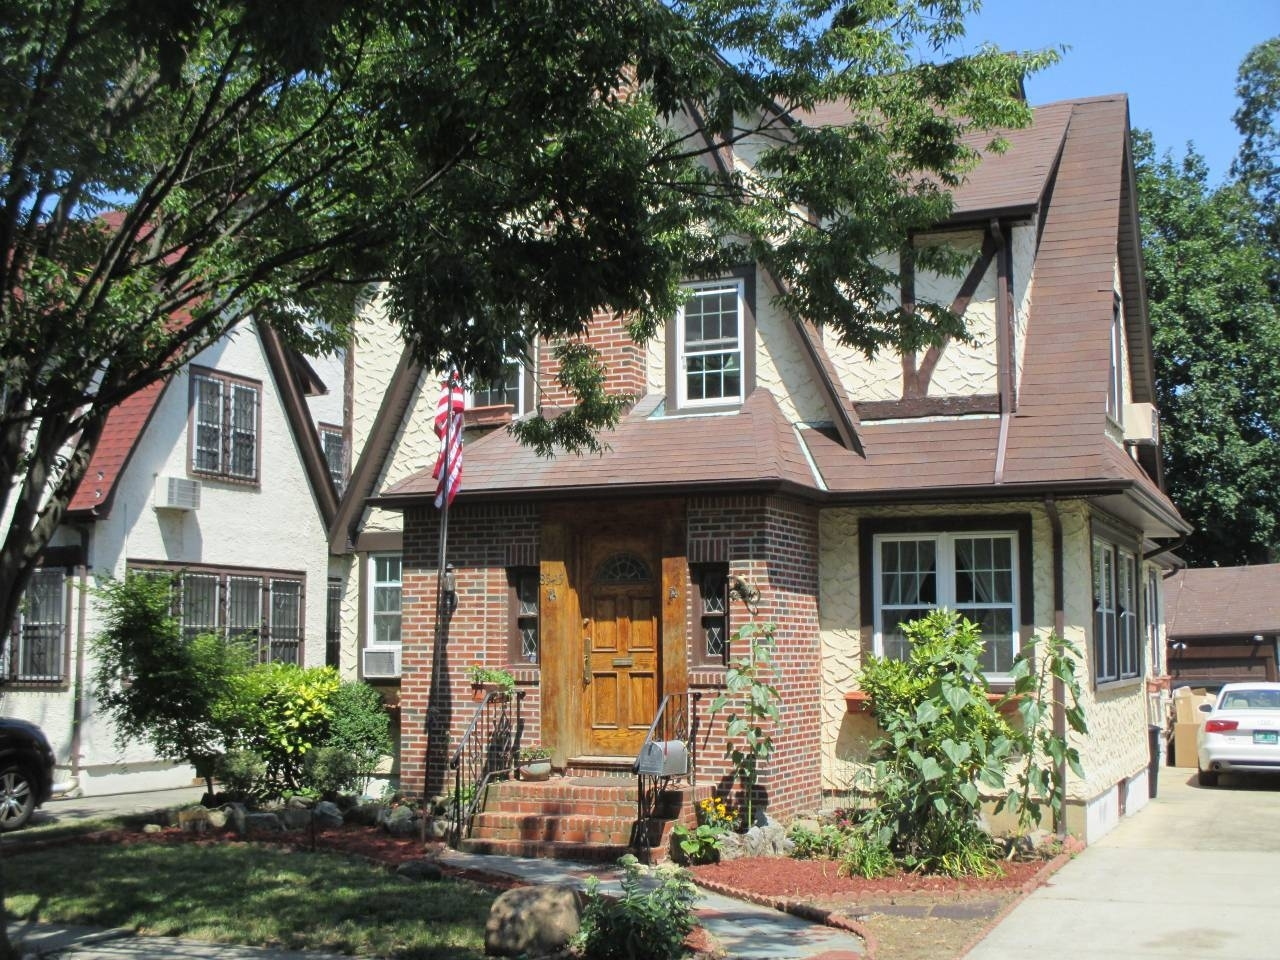 Trump childhood home listed on Airbnb for $725 per night